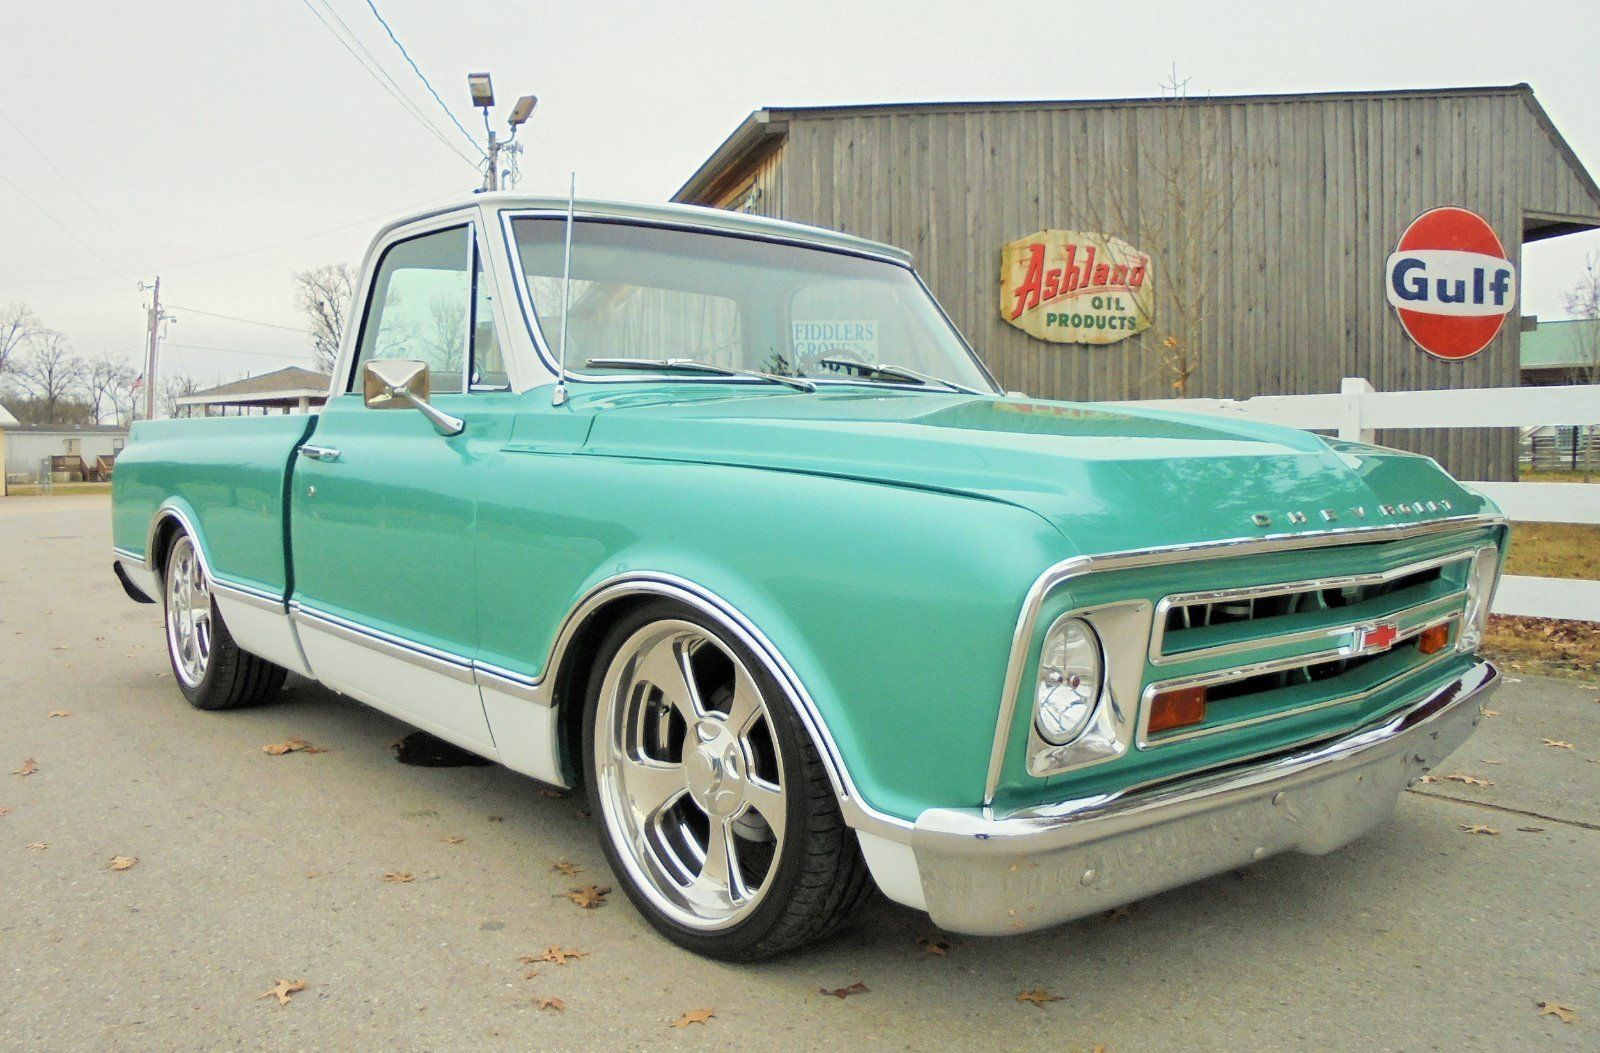 Nice Great 1969 Chevrolet C10 1969 Chevrolet c10 6.0 LS